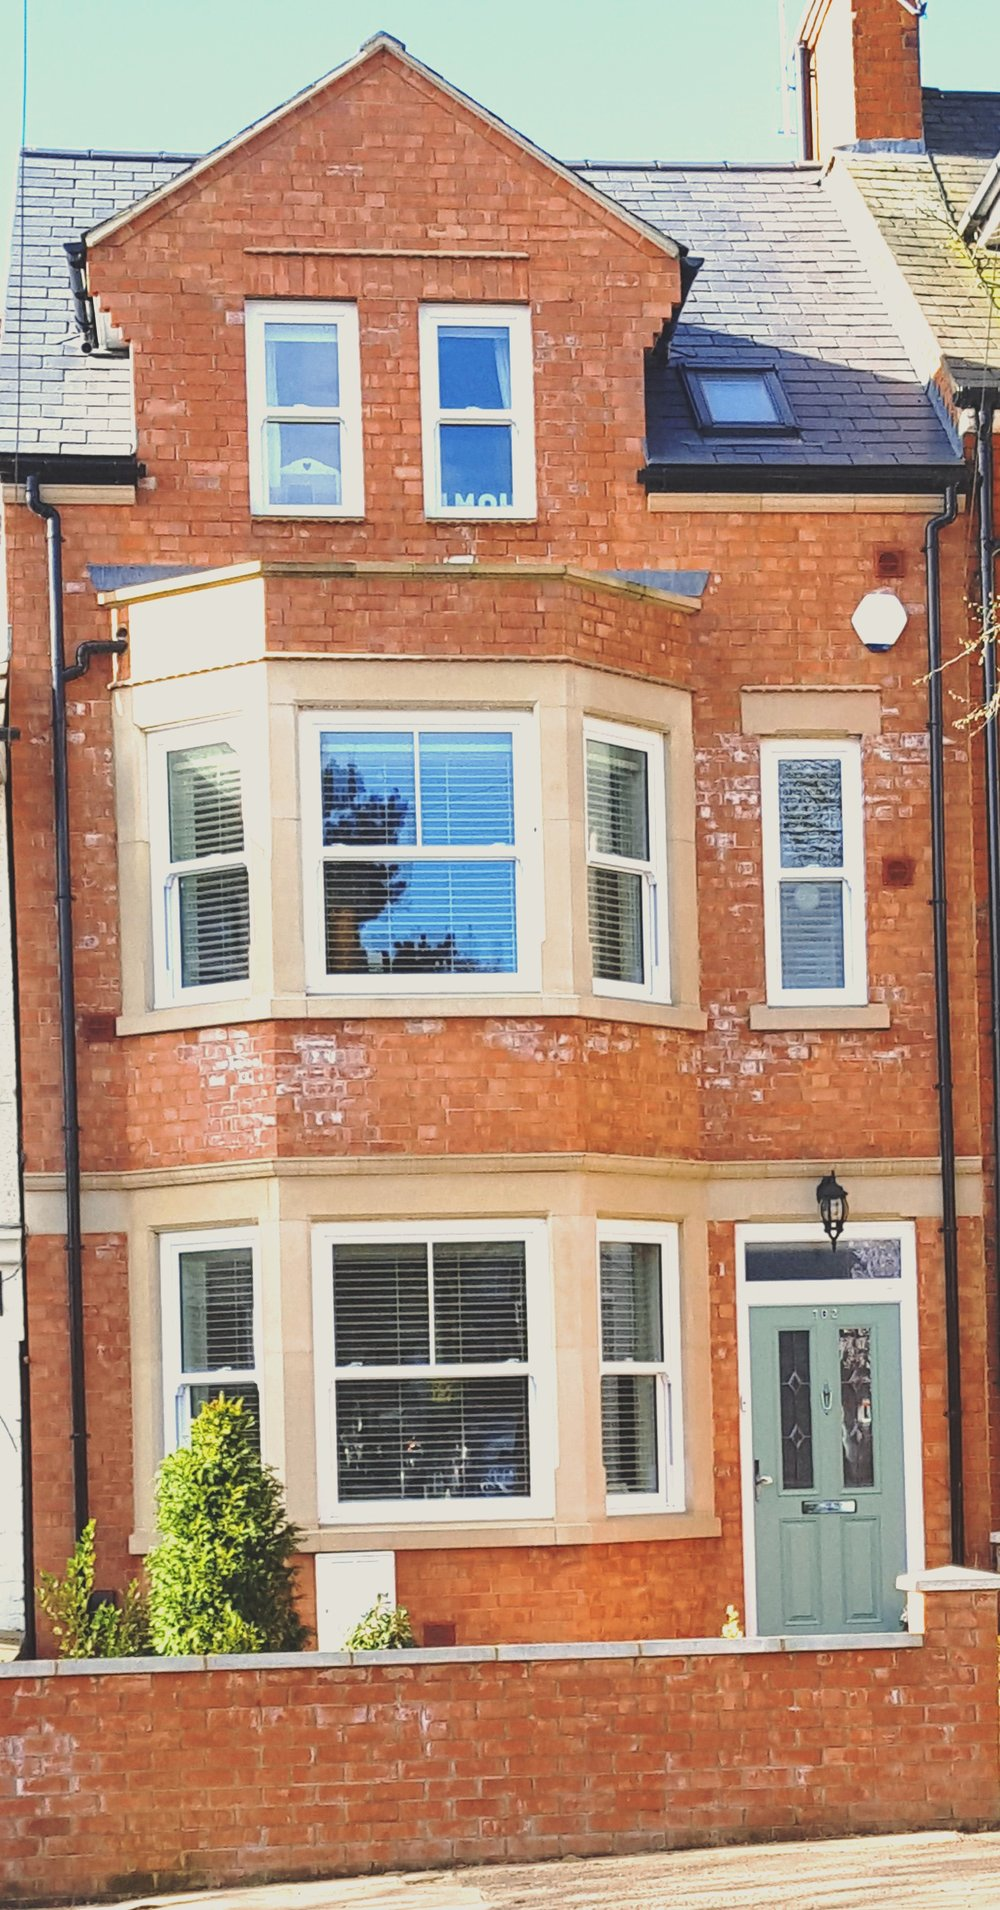 102 Kingsthorpe Grove front elevation.jpg